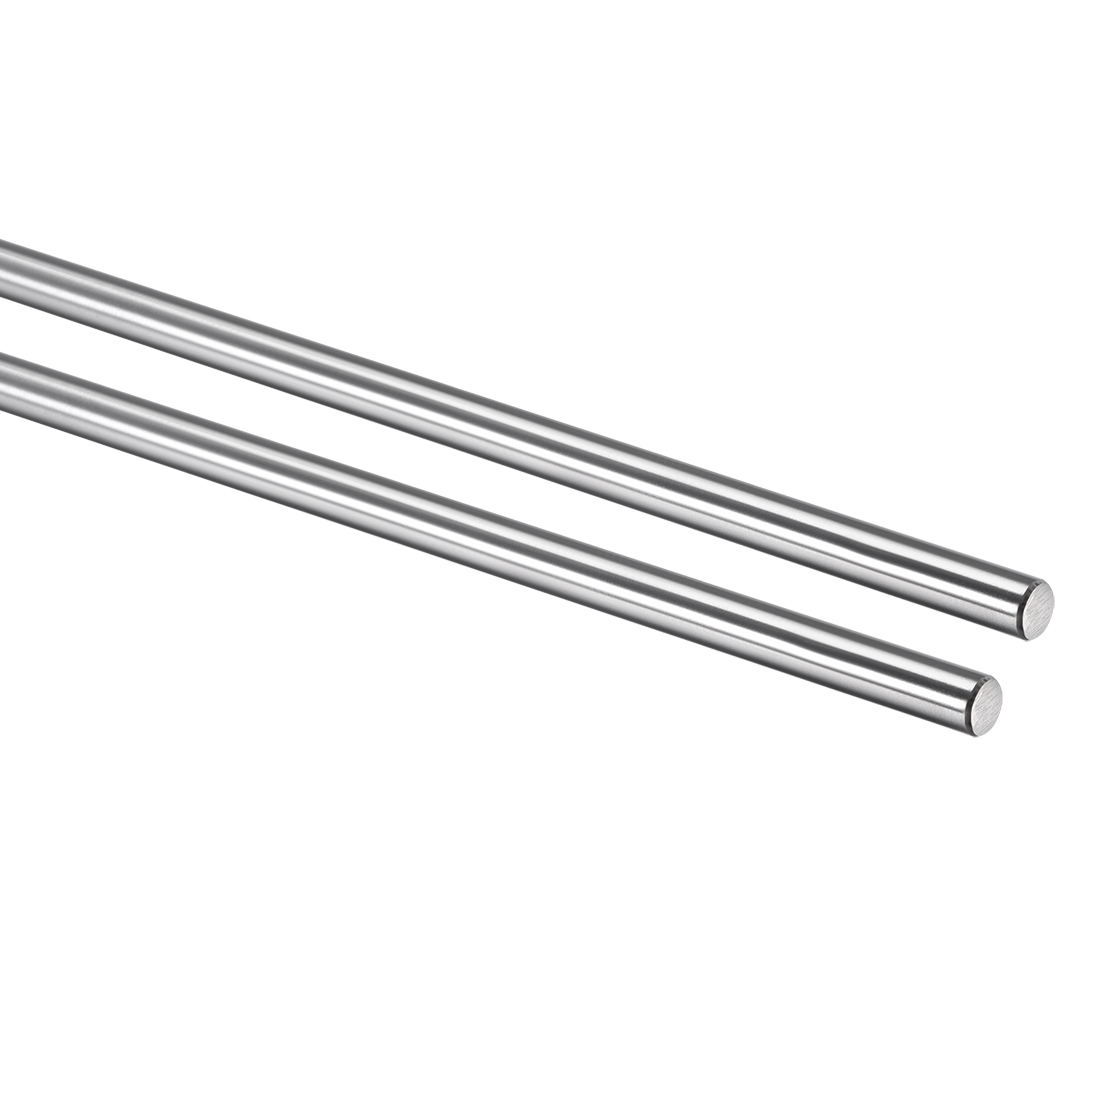 8mm x 301mm Hardened Rod Chrome Plated Linear Motion Shaft / Guide 2pcs